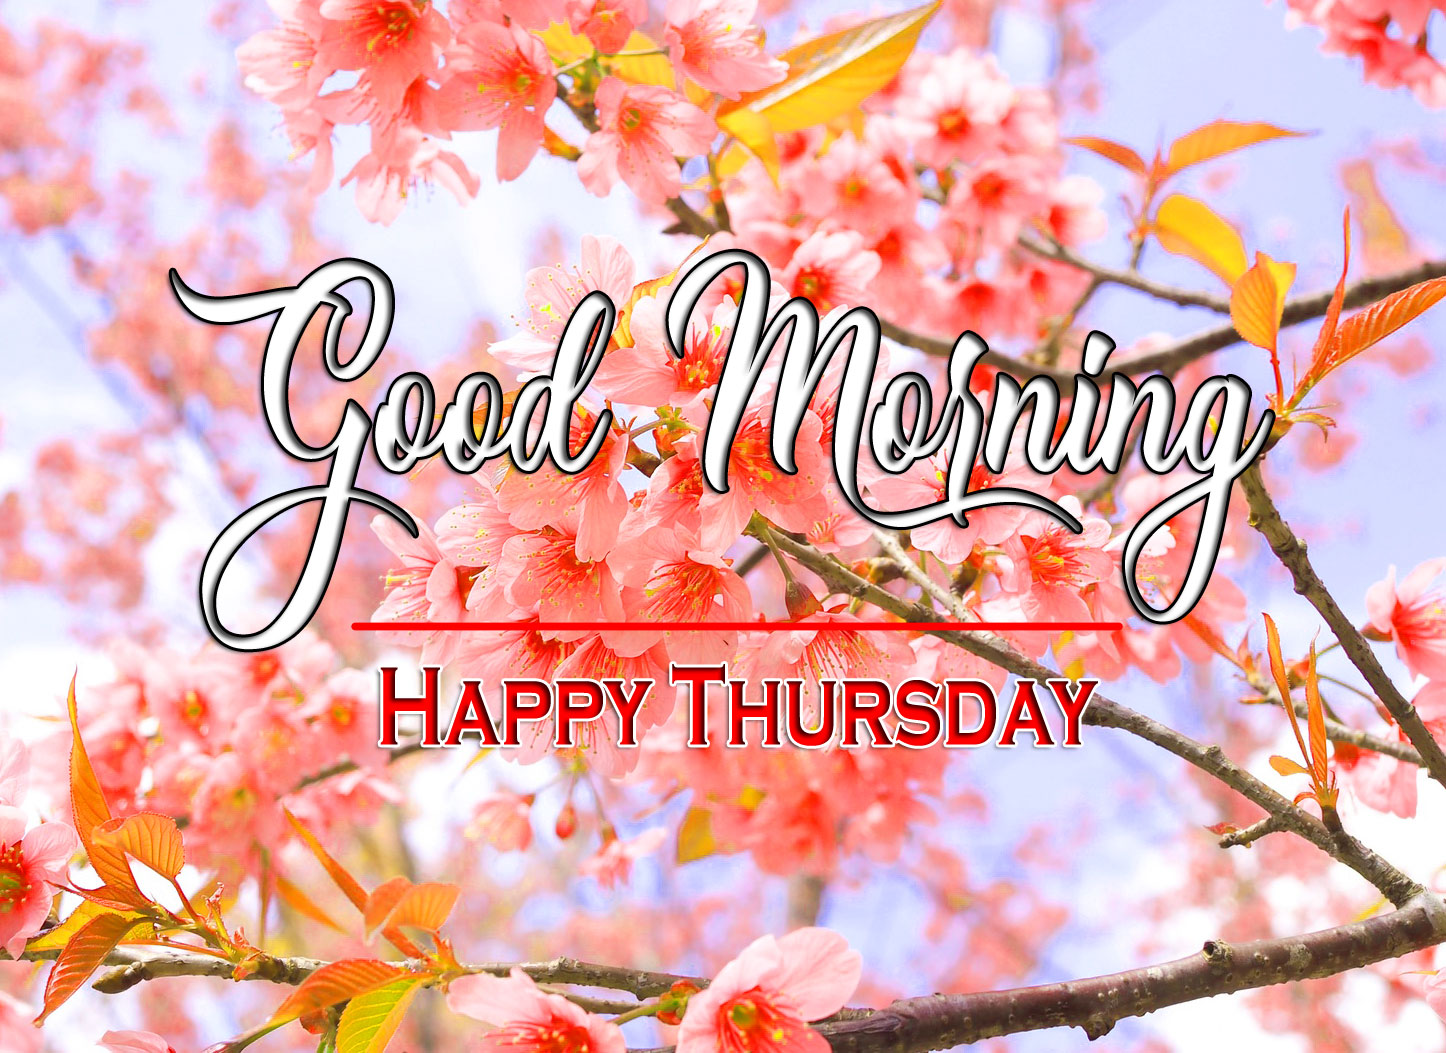 Nature thursday morning Images